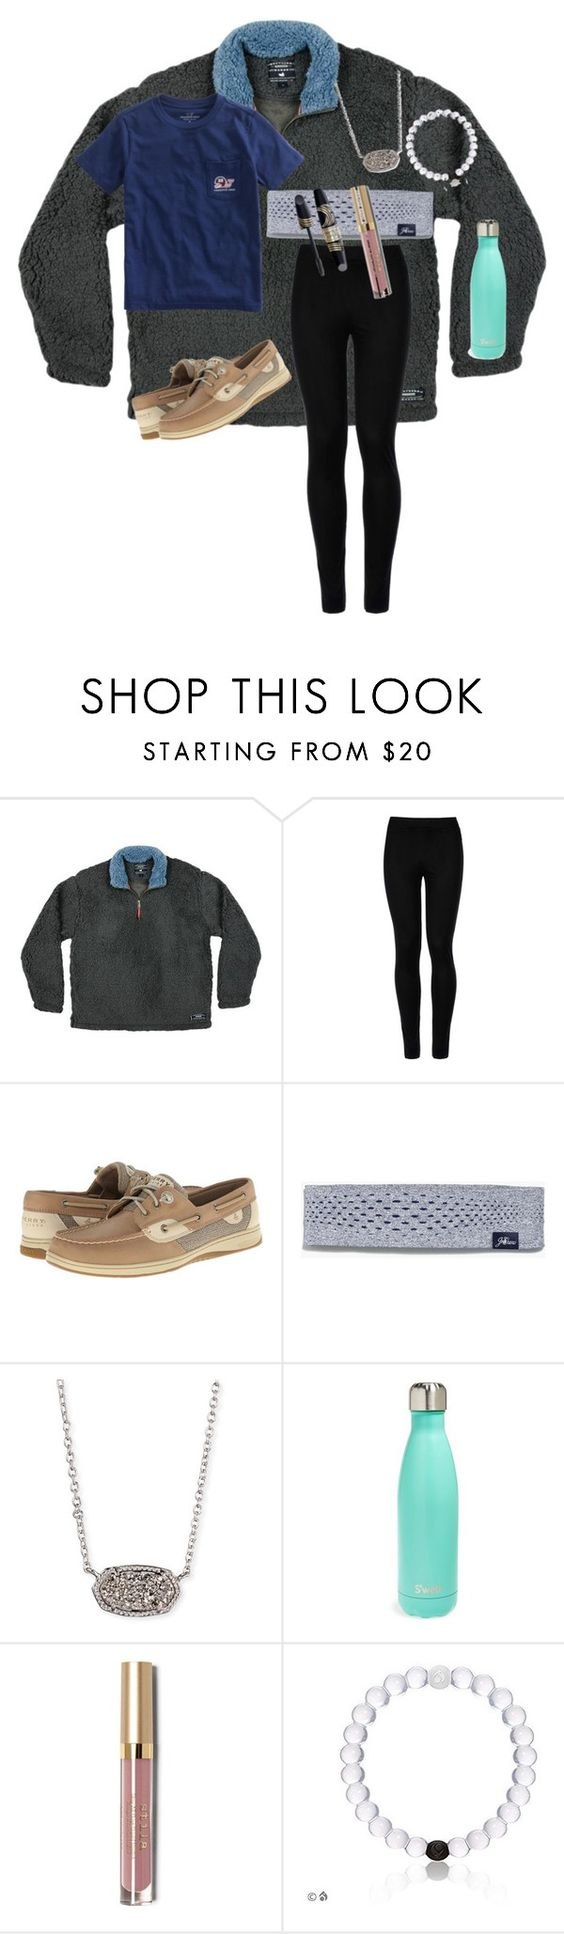 """""""#ootdlazydayz🍕💤"""" by preppy-renee ❤ liked on Polyvore featuring Wolford, Sperry, Vineyard Vines, New Balance, Kendra Scott, S'well, Max Factor, Stila and whatimwearingrightnow"""